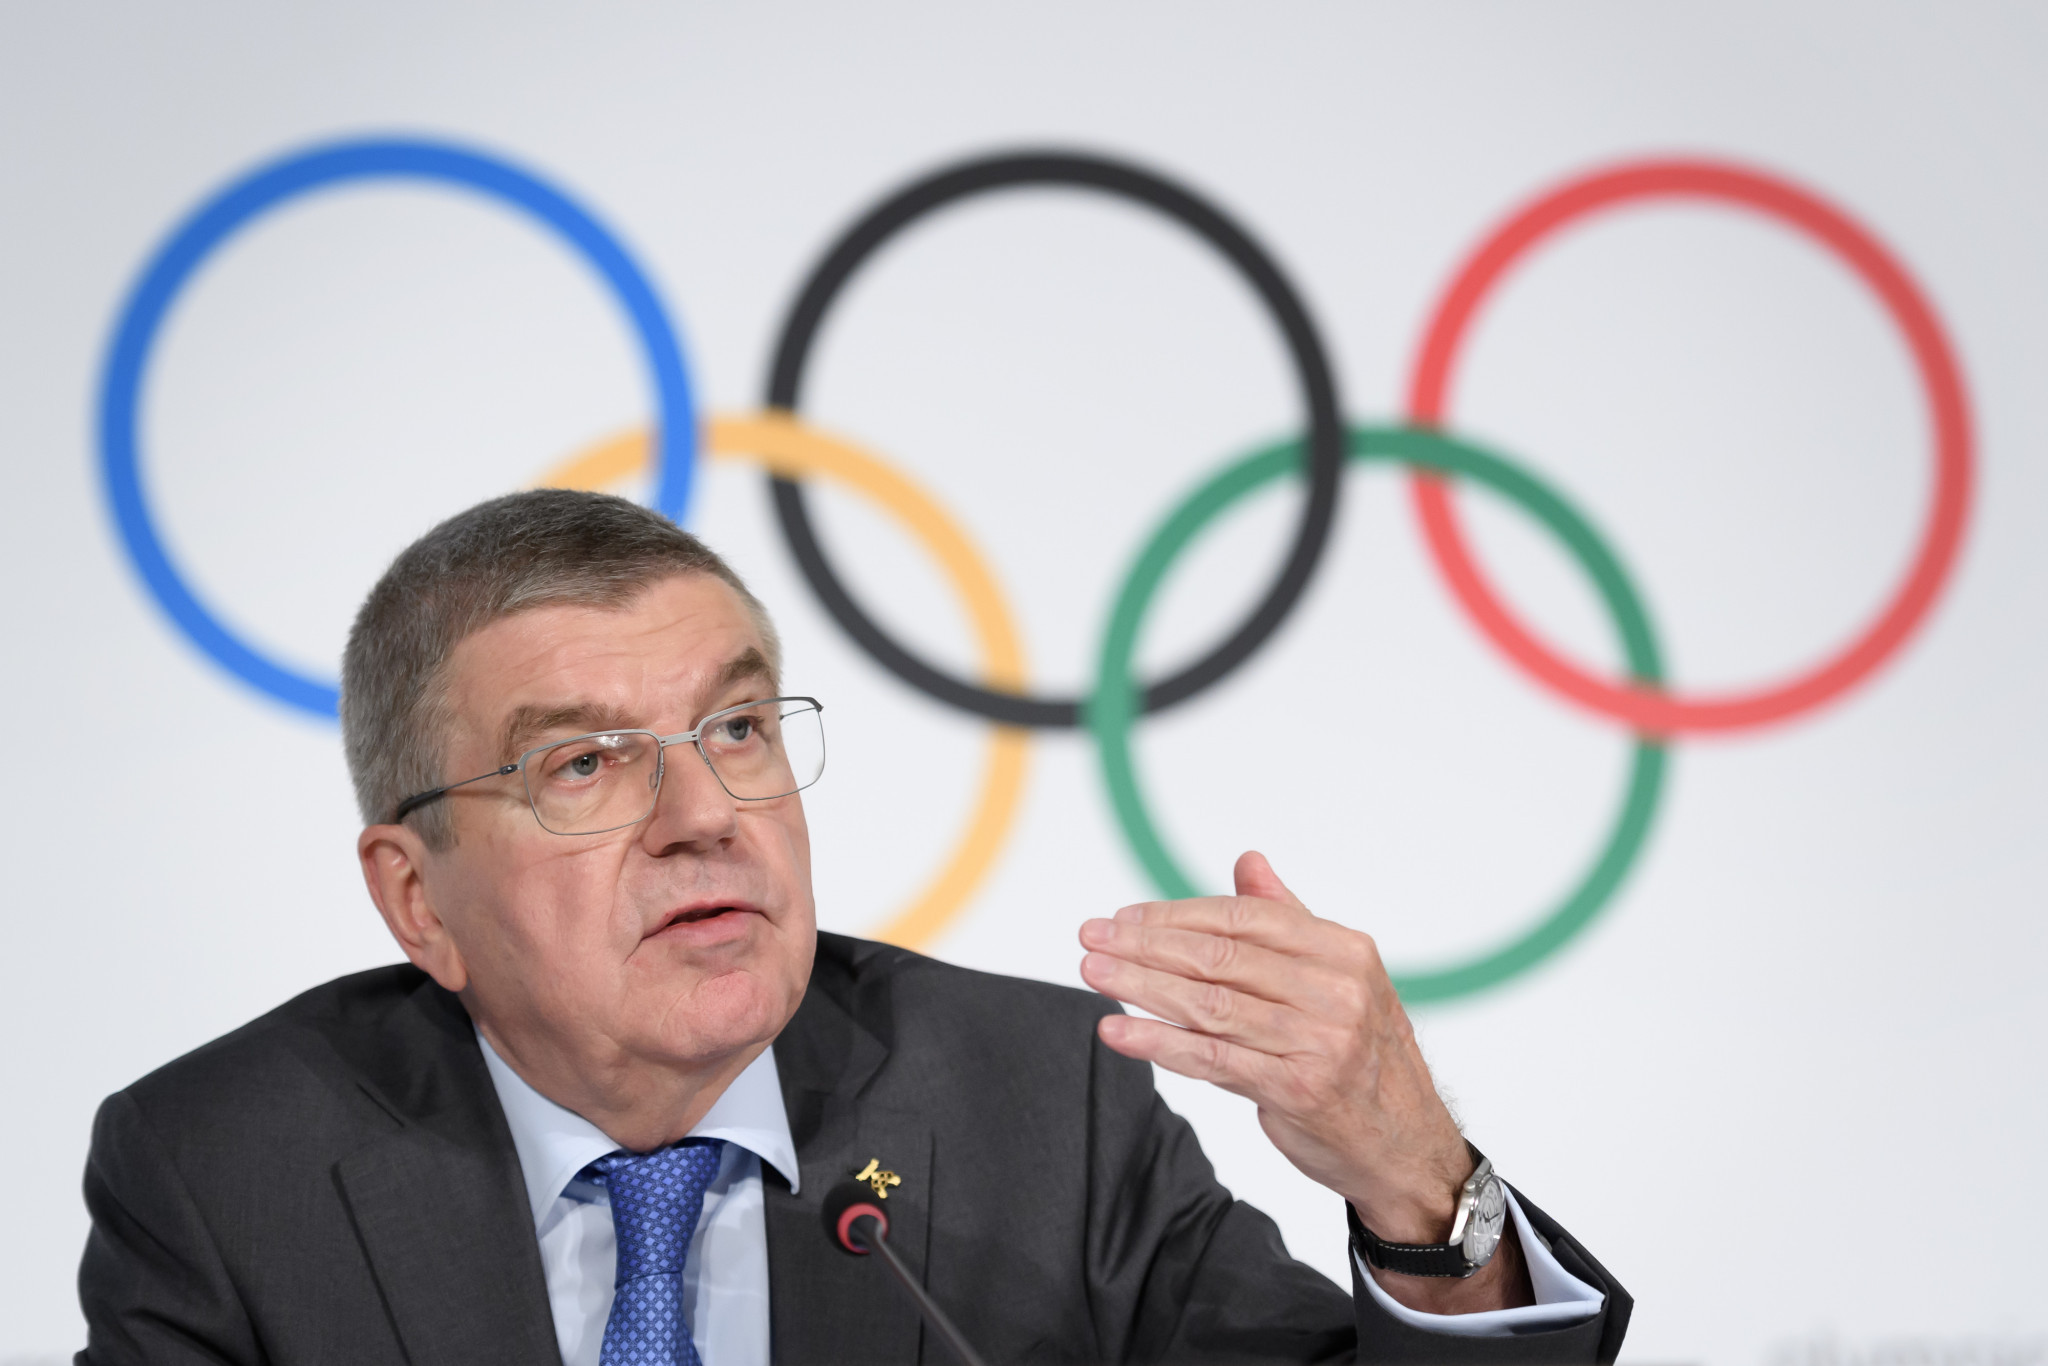 IOC President Thomas Bach claimed earlier this year that guidelines would differ across the NOCs ©Getty Images